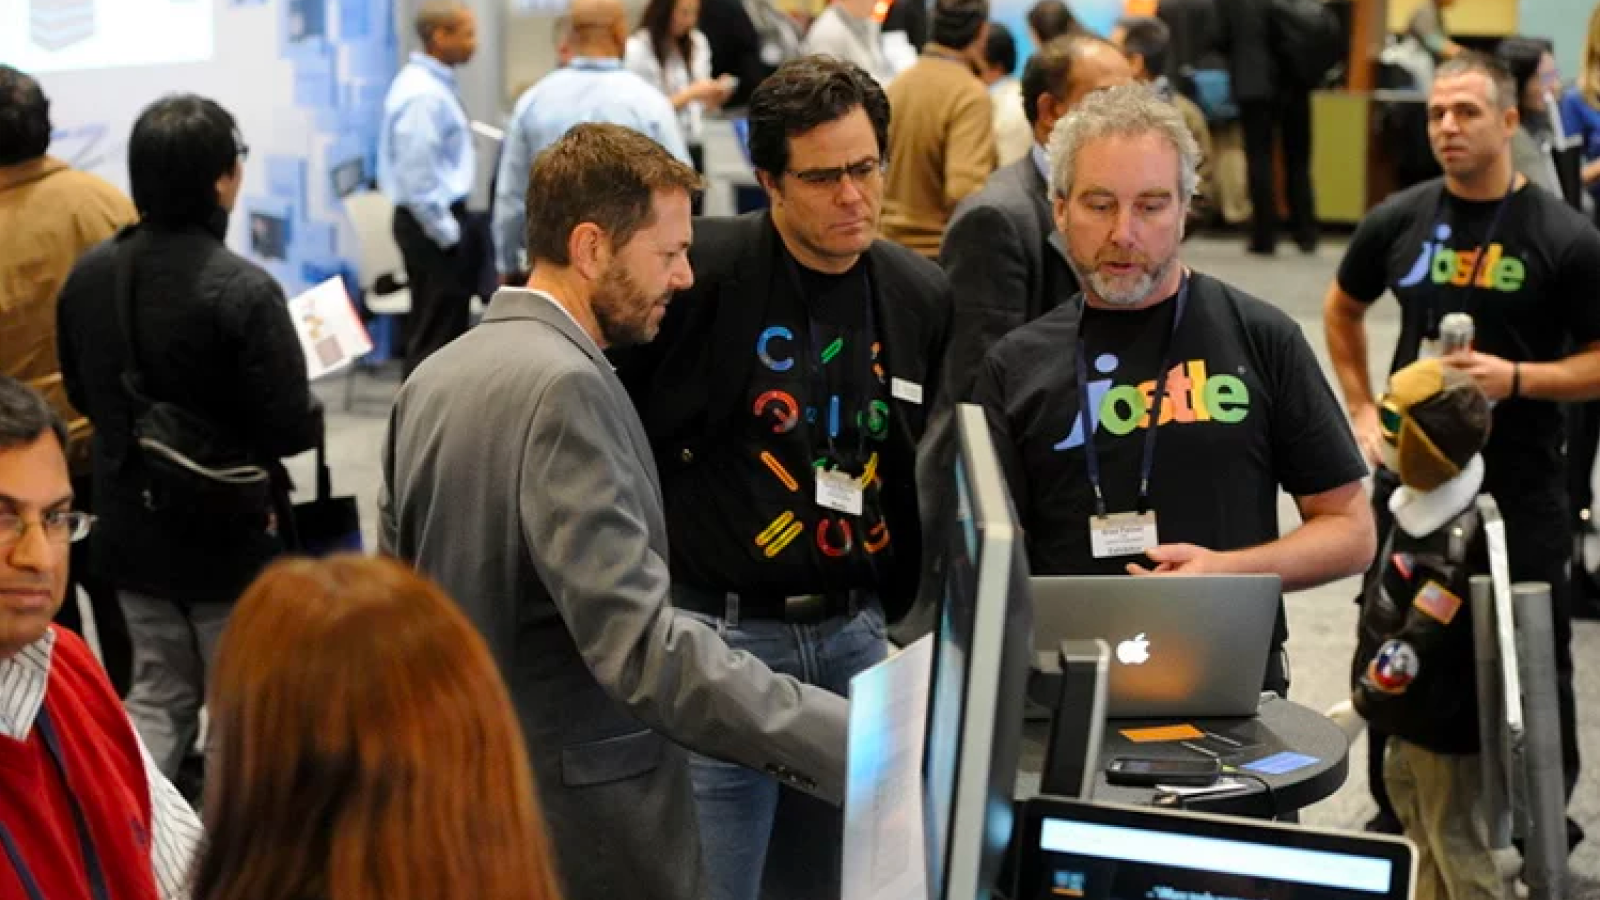 Jostle Steals the Show at E2 Innovate